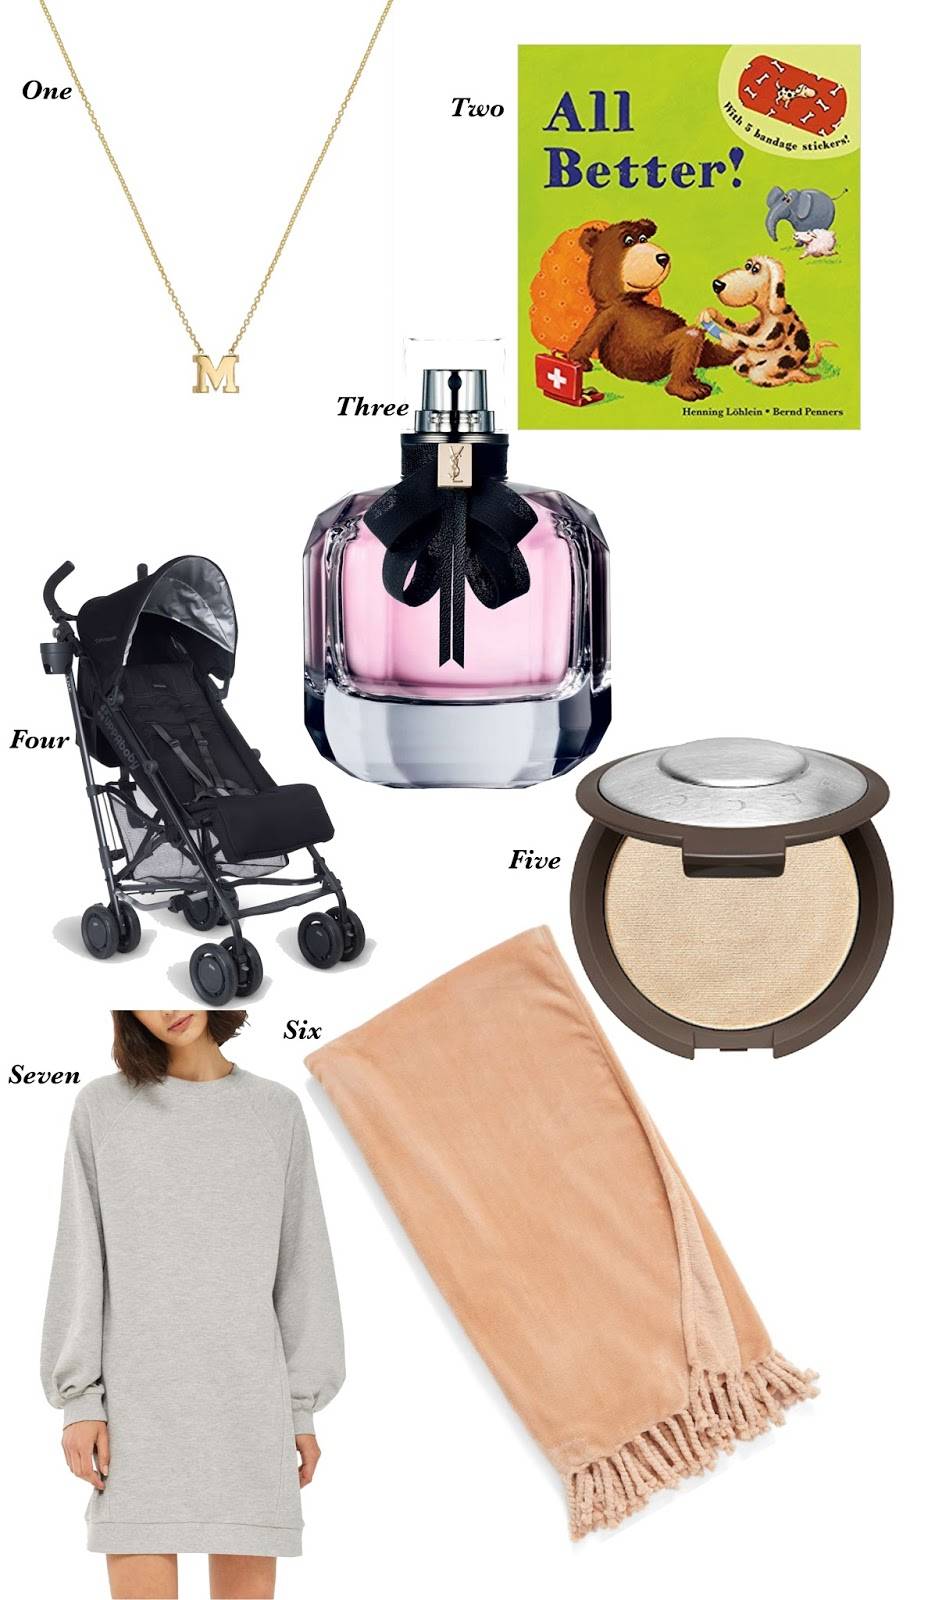 Friday Favorites - Click through to see more on Something Delightful Blog!